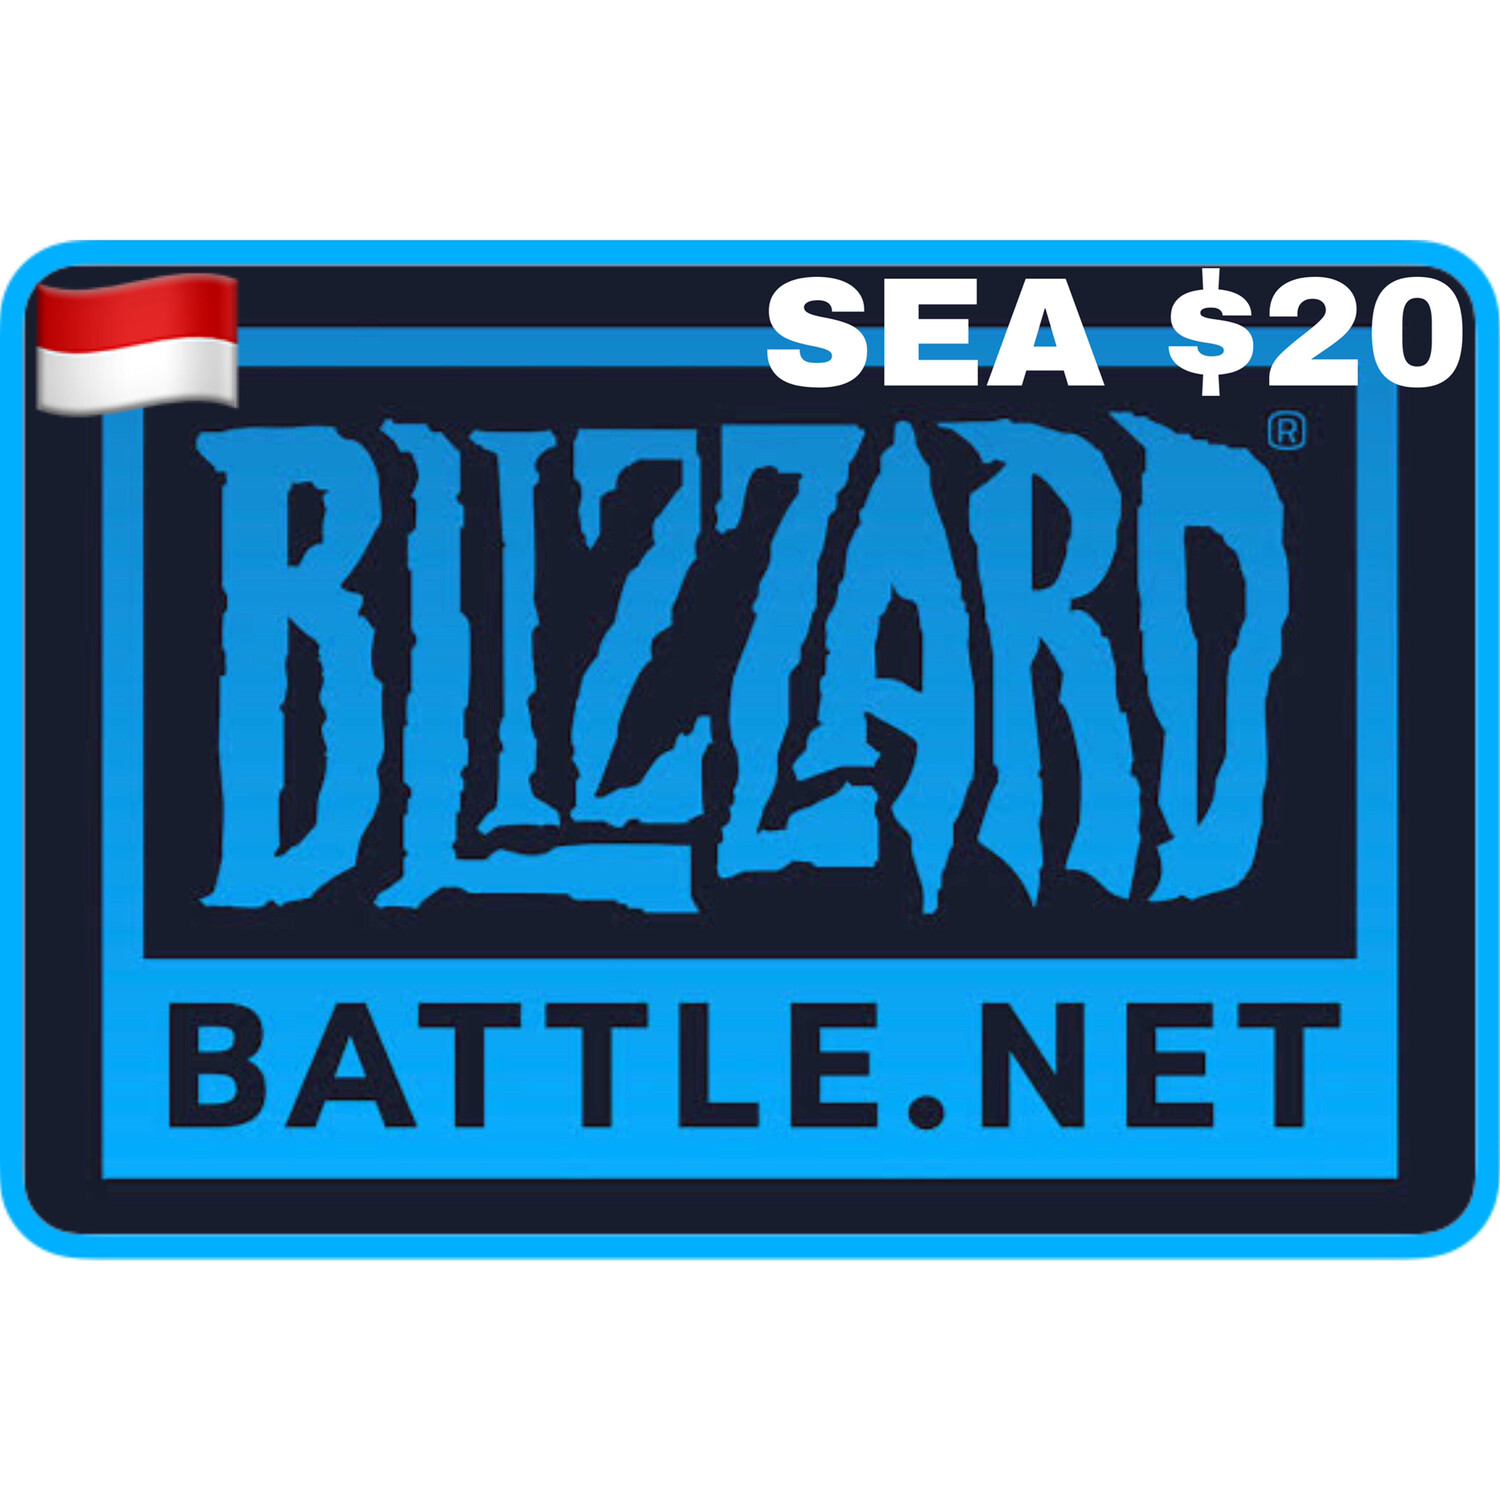 Battle.net Gift Card SEA $20 Blizzard Balance Code